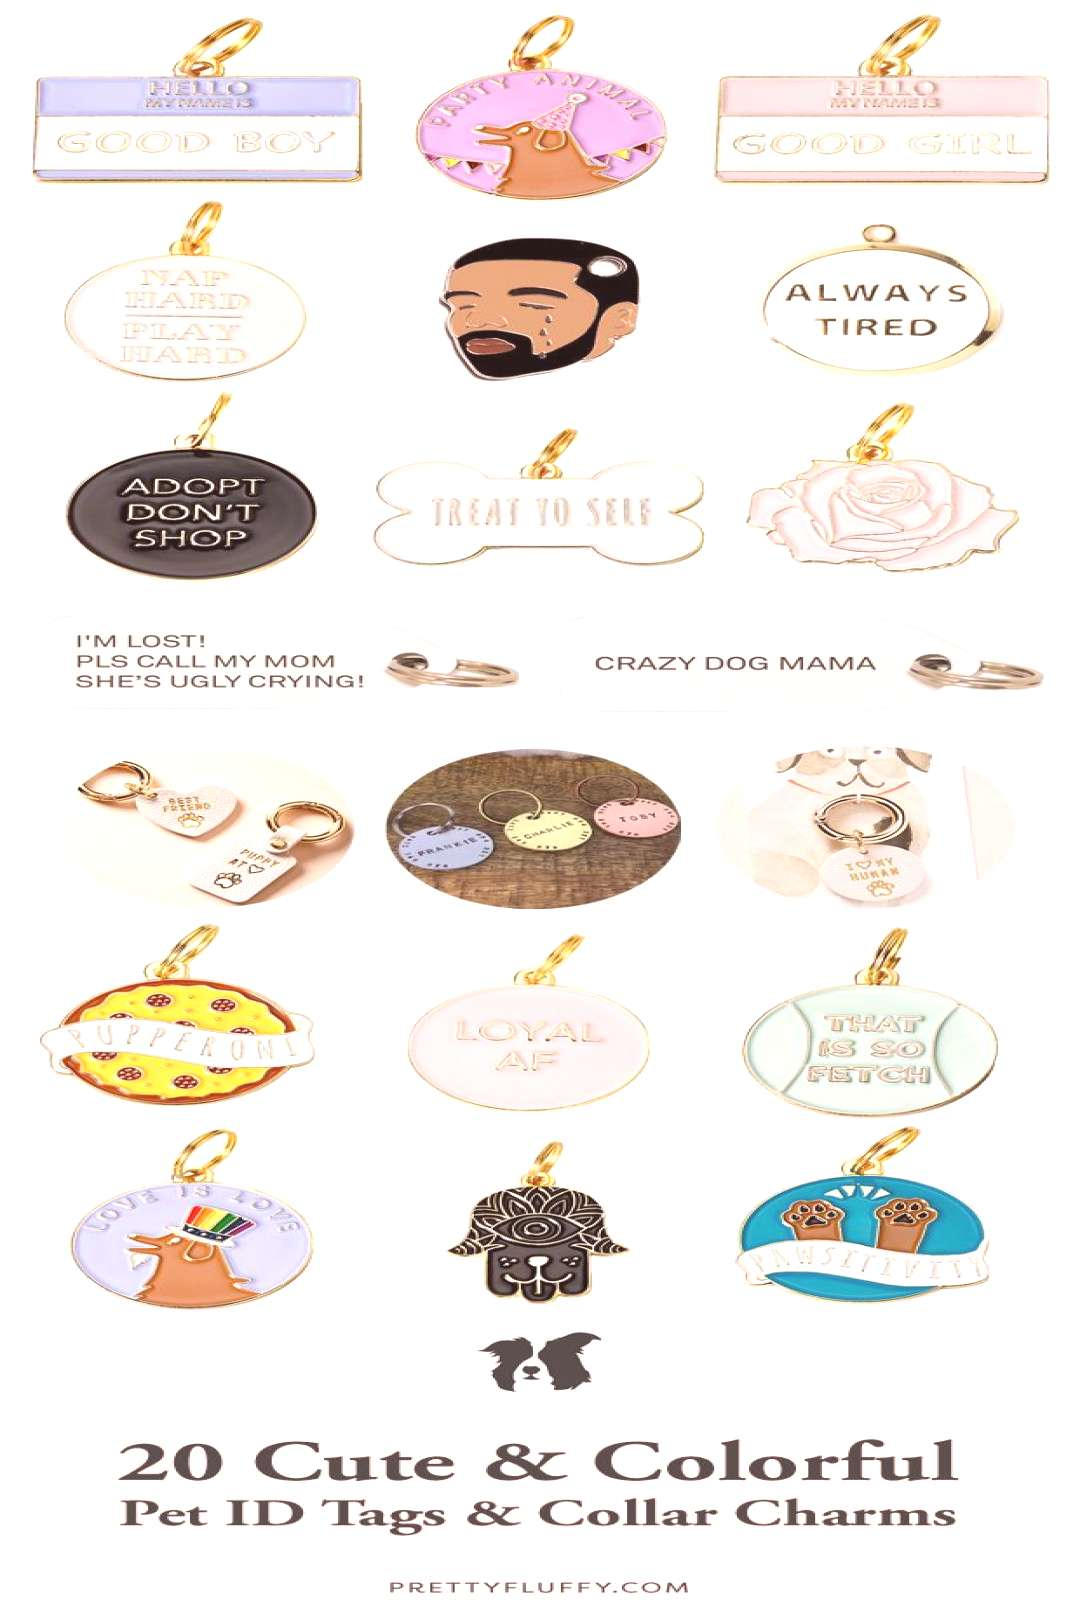 20 Cute & Colorful Pet ID Tags & Dog Collar Charms - Pretty Fluffy 20 Cute & Colorful Pet ID Tags a